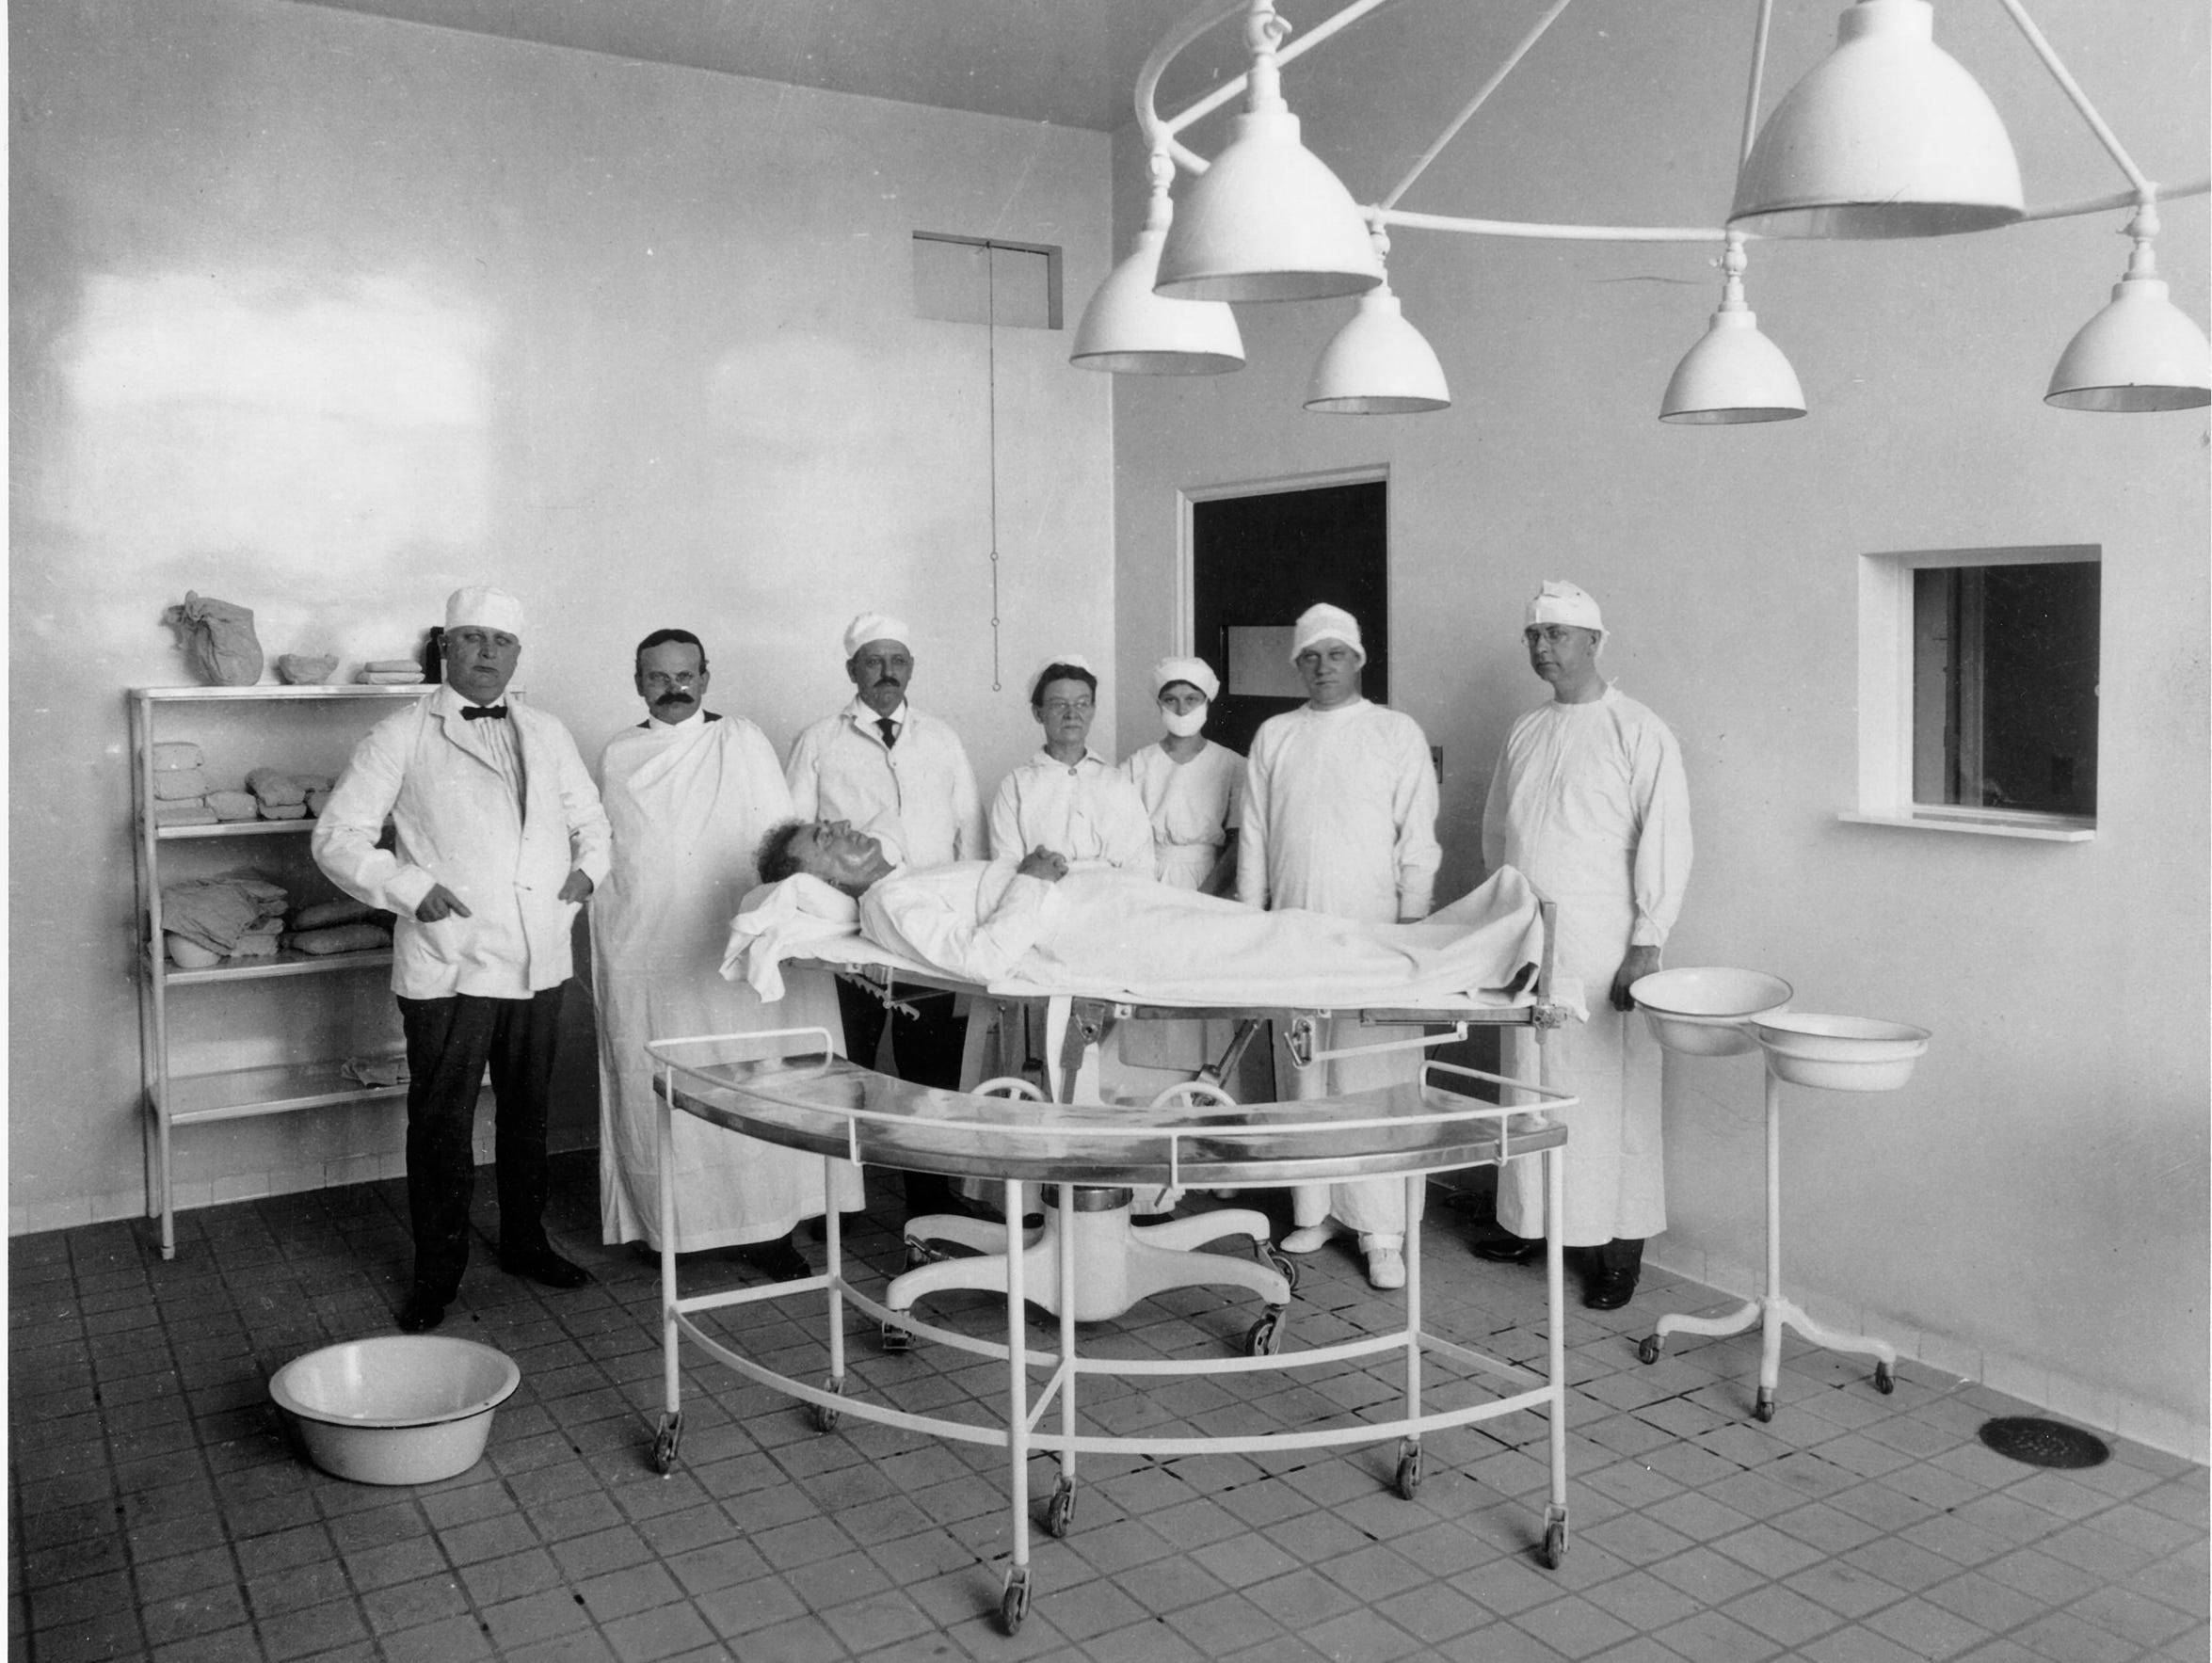 A group of surgeons prepare for surgery in the early